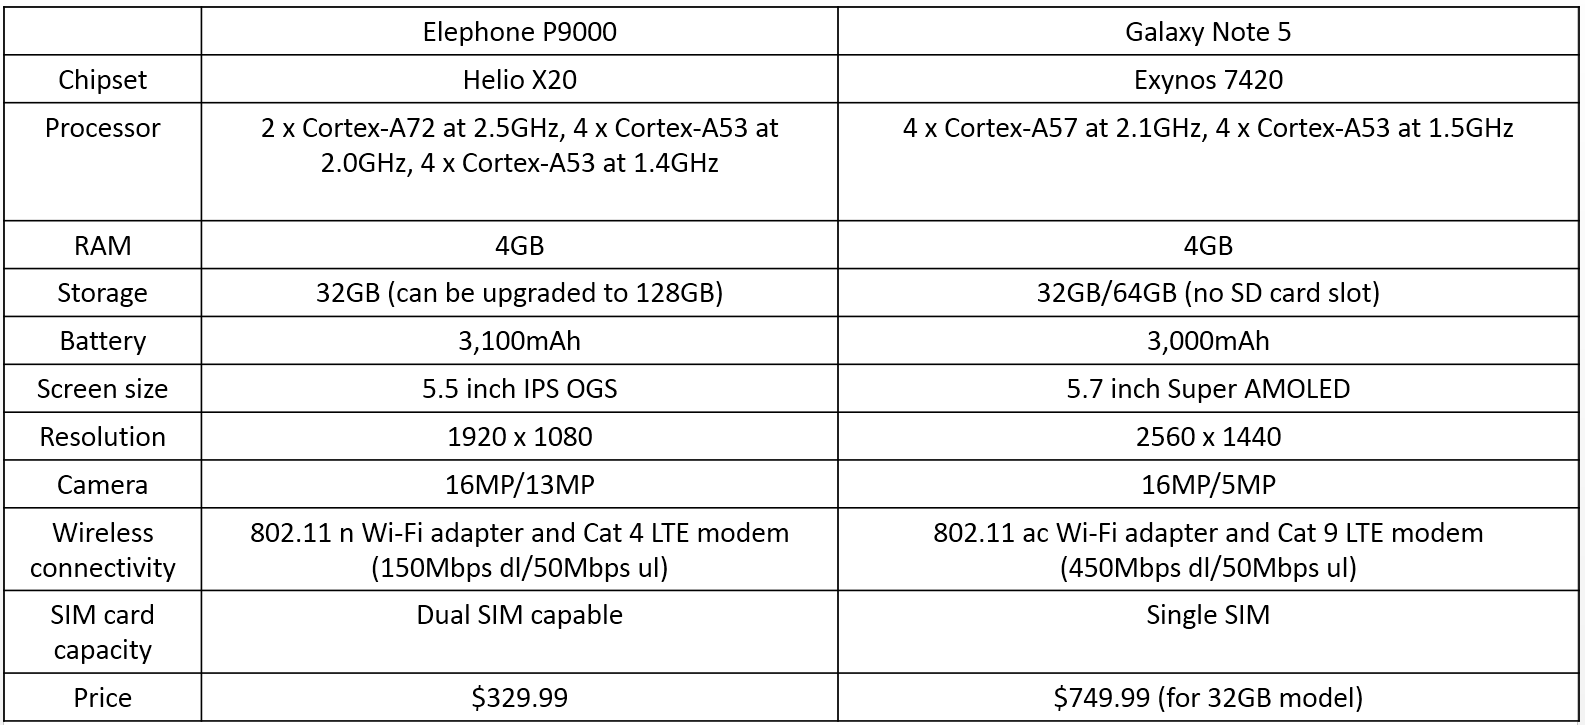 Elephone P9000 is a $329.99 smartphone that will deliver a killing blow to Galaxy Note 5